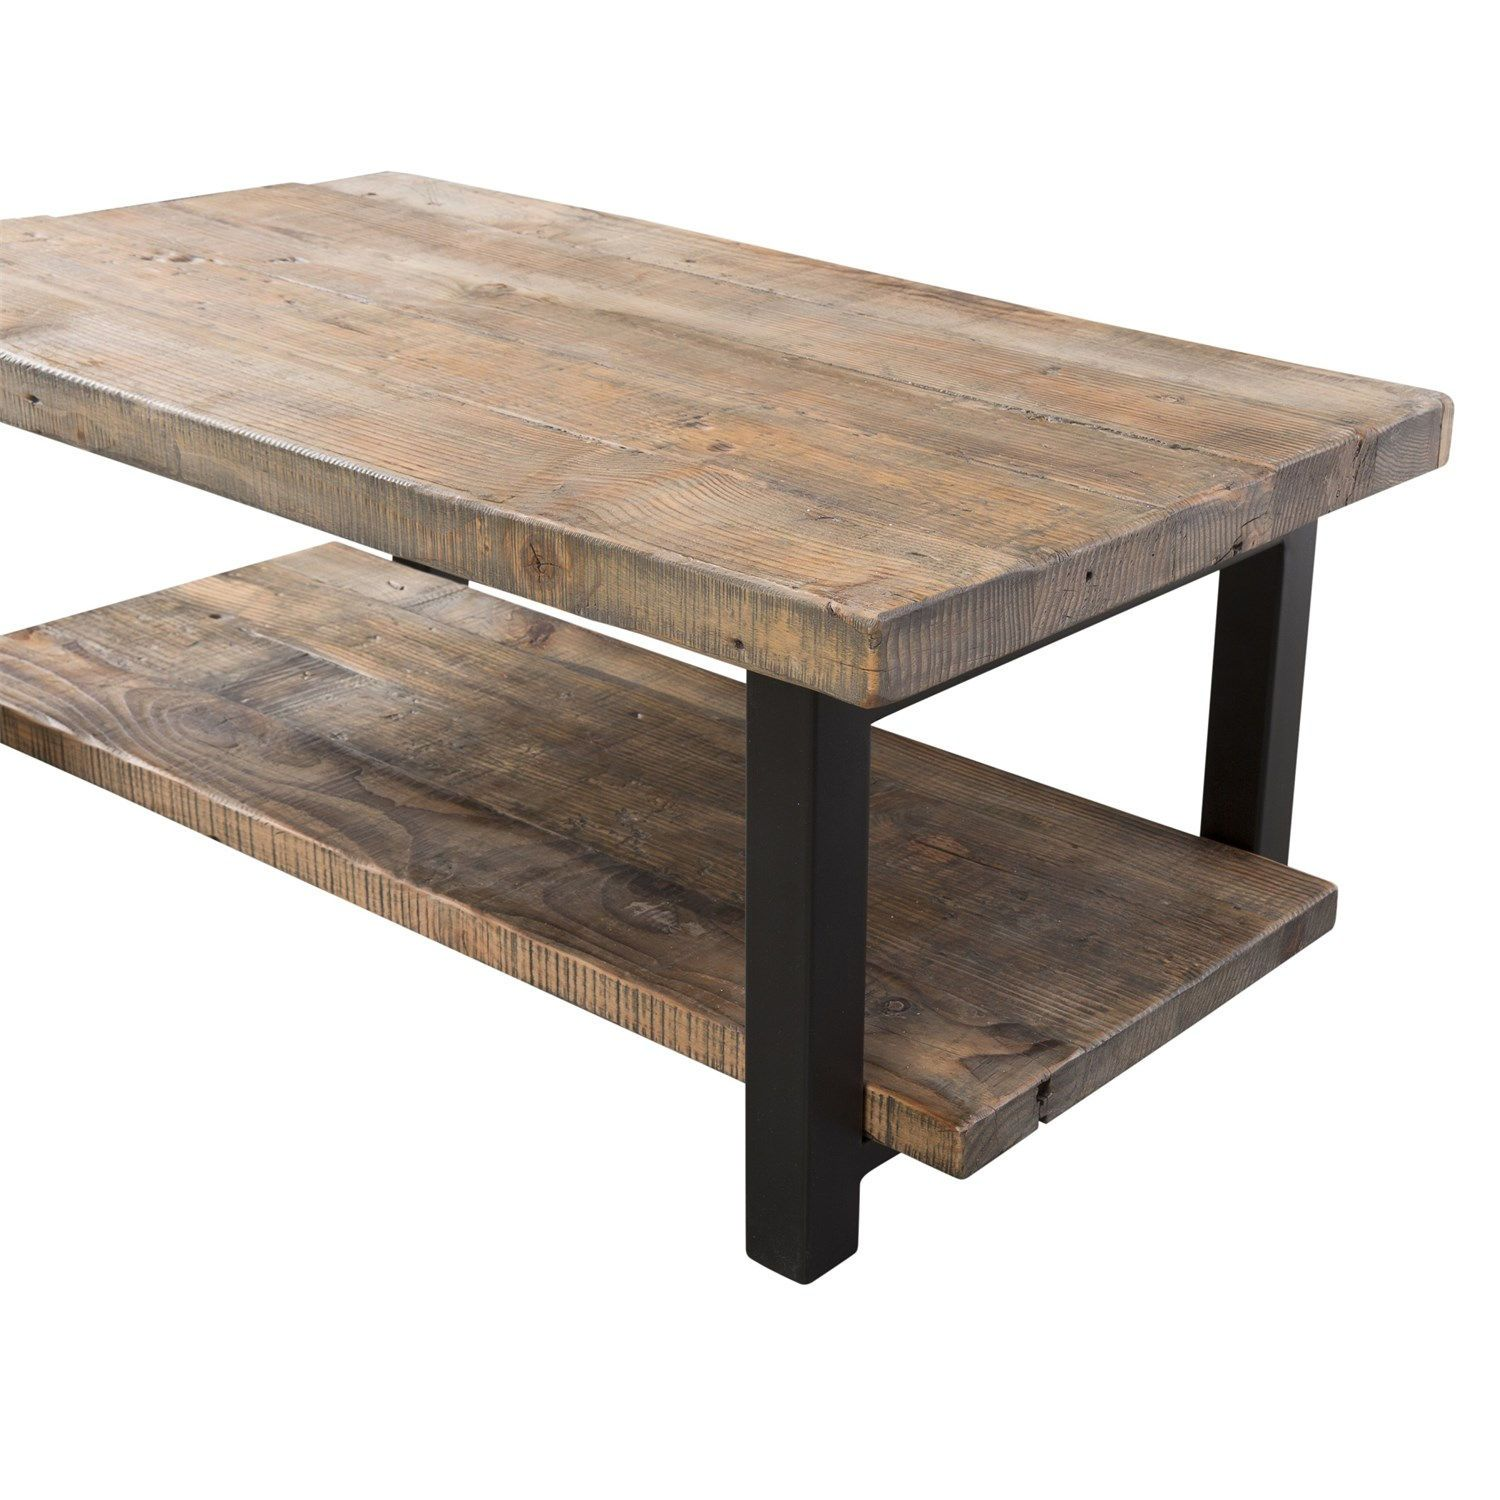 Alaterre Amba1120 Pomona Coffee Table In Rustic Natural With